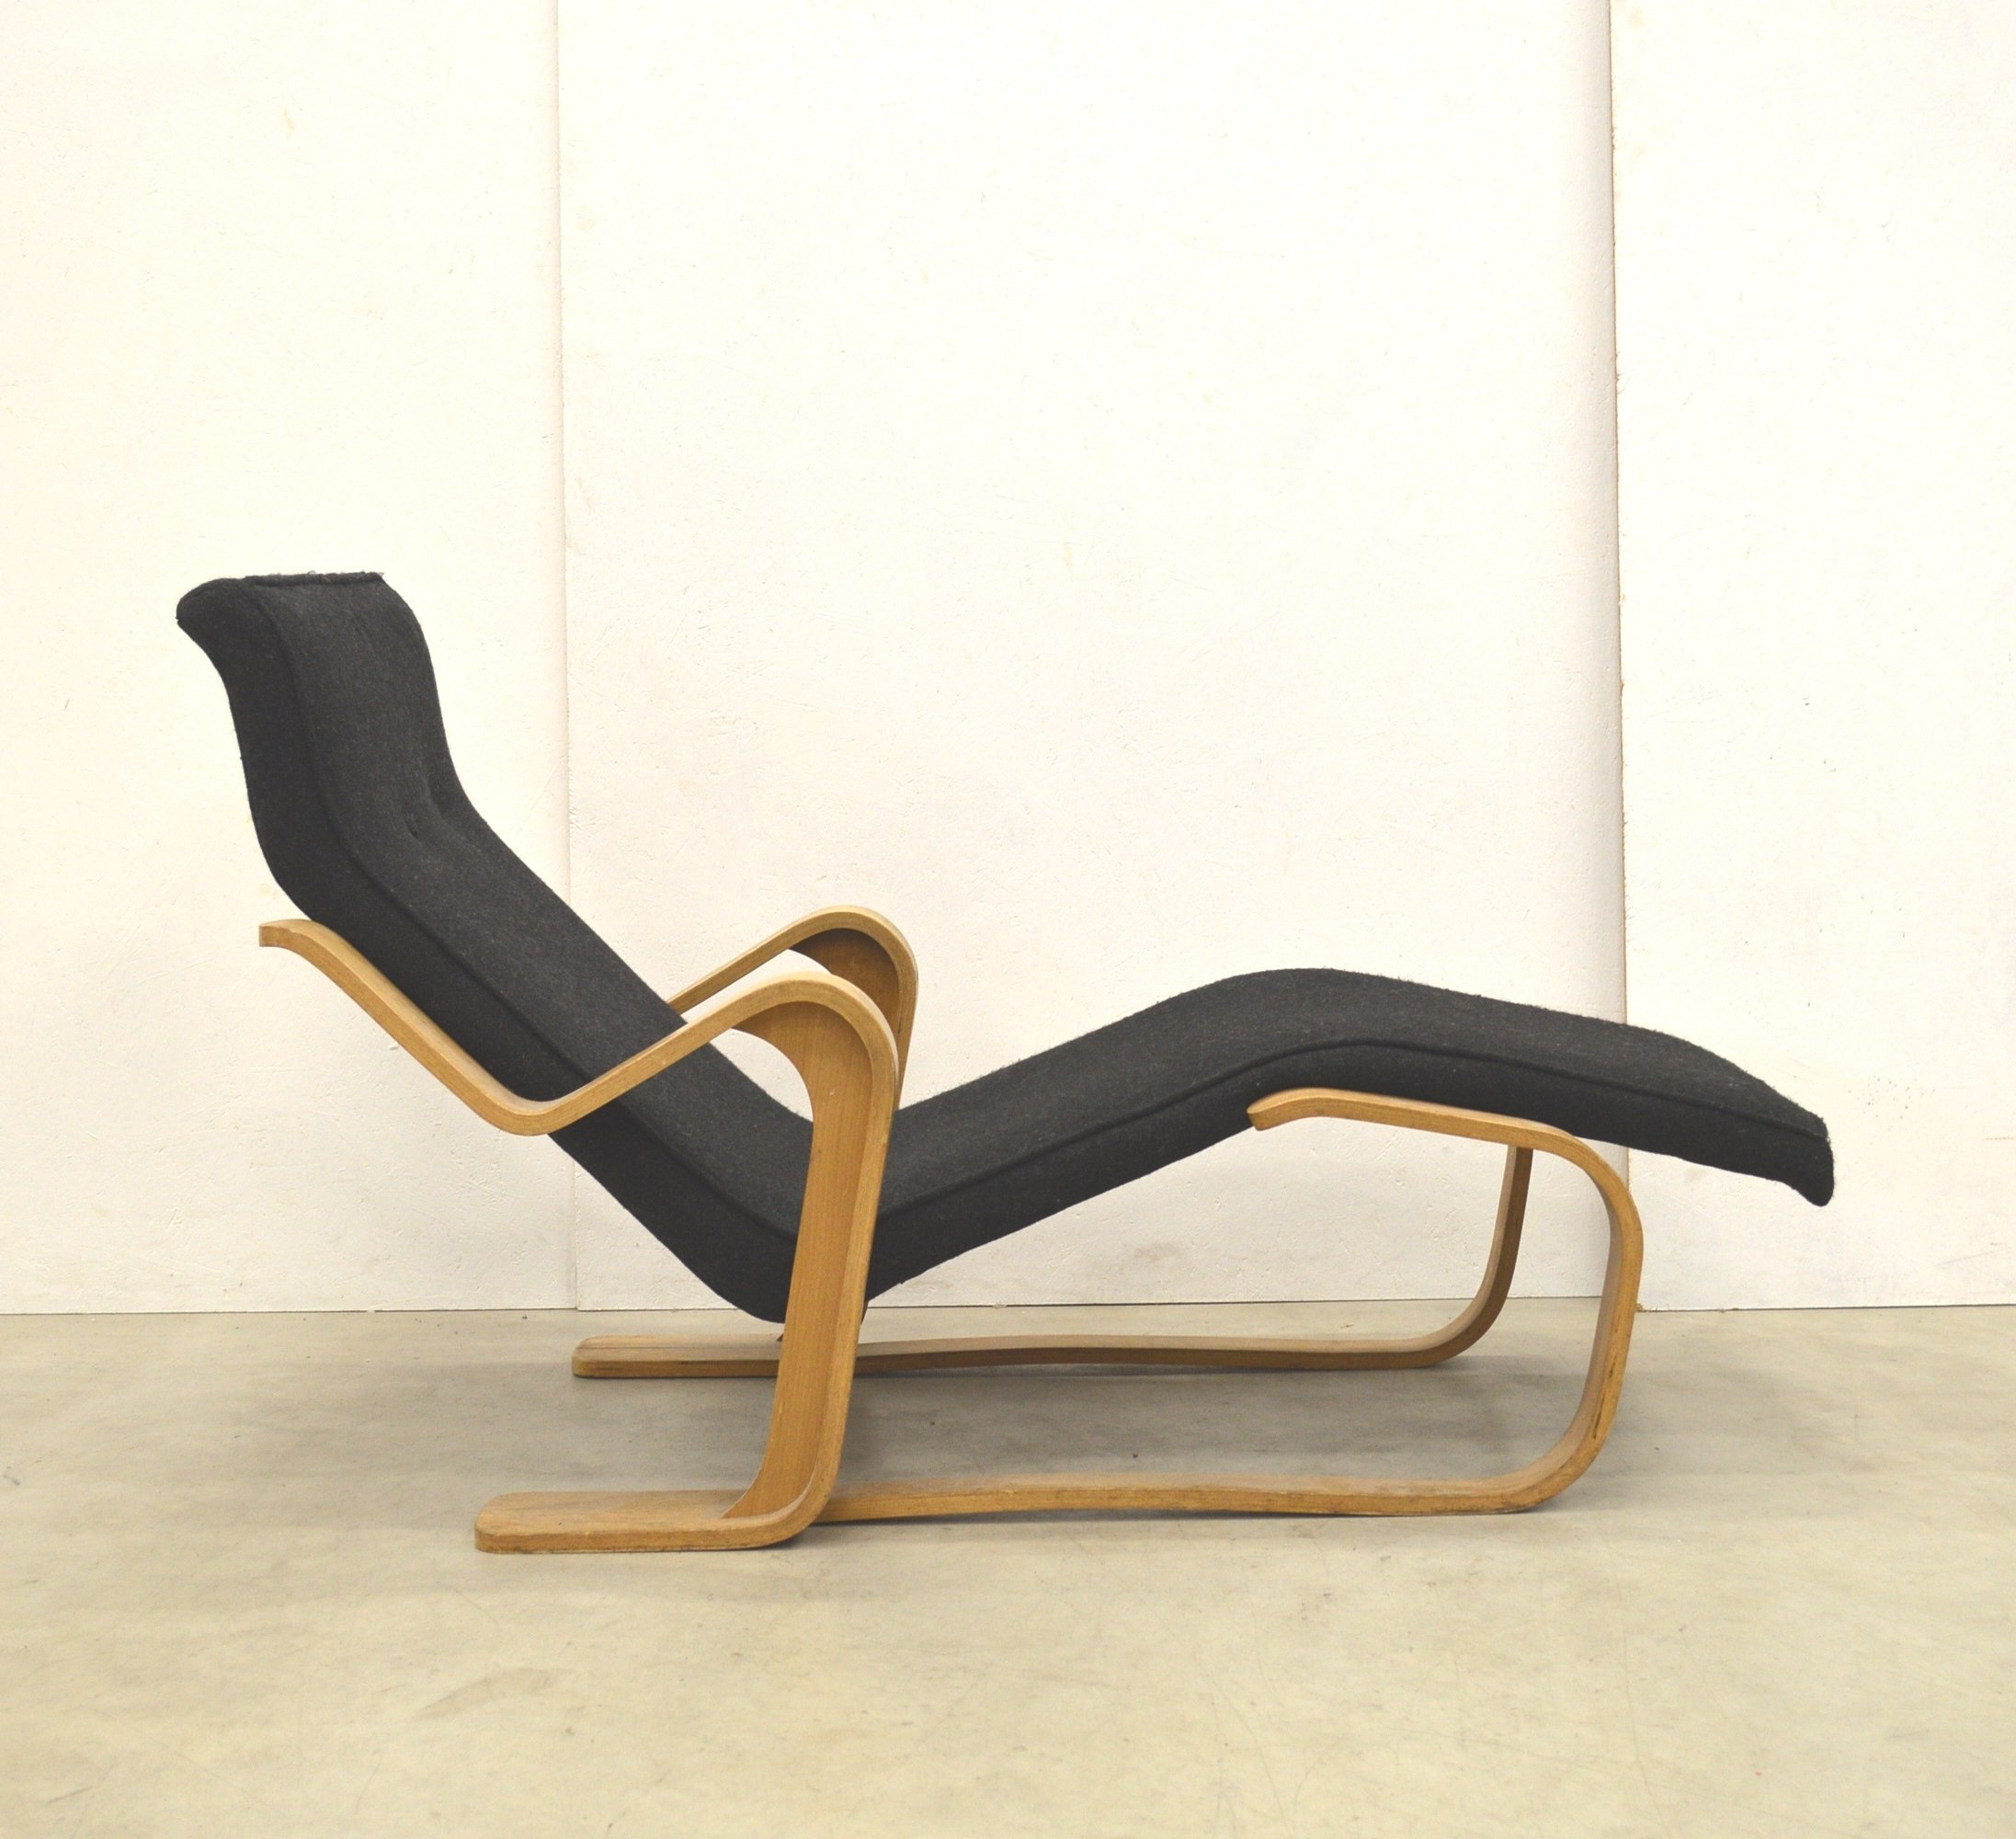 Chaise Lounge Chair.Lounge Chair By Marcel Breuer For Isokon 1930s 67226